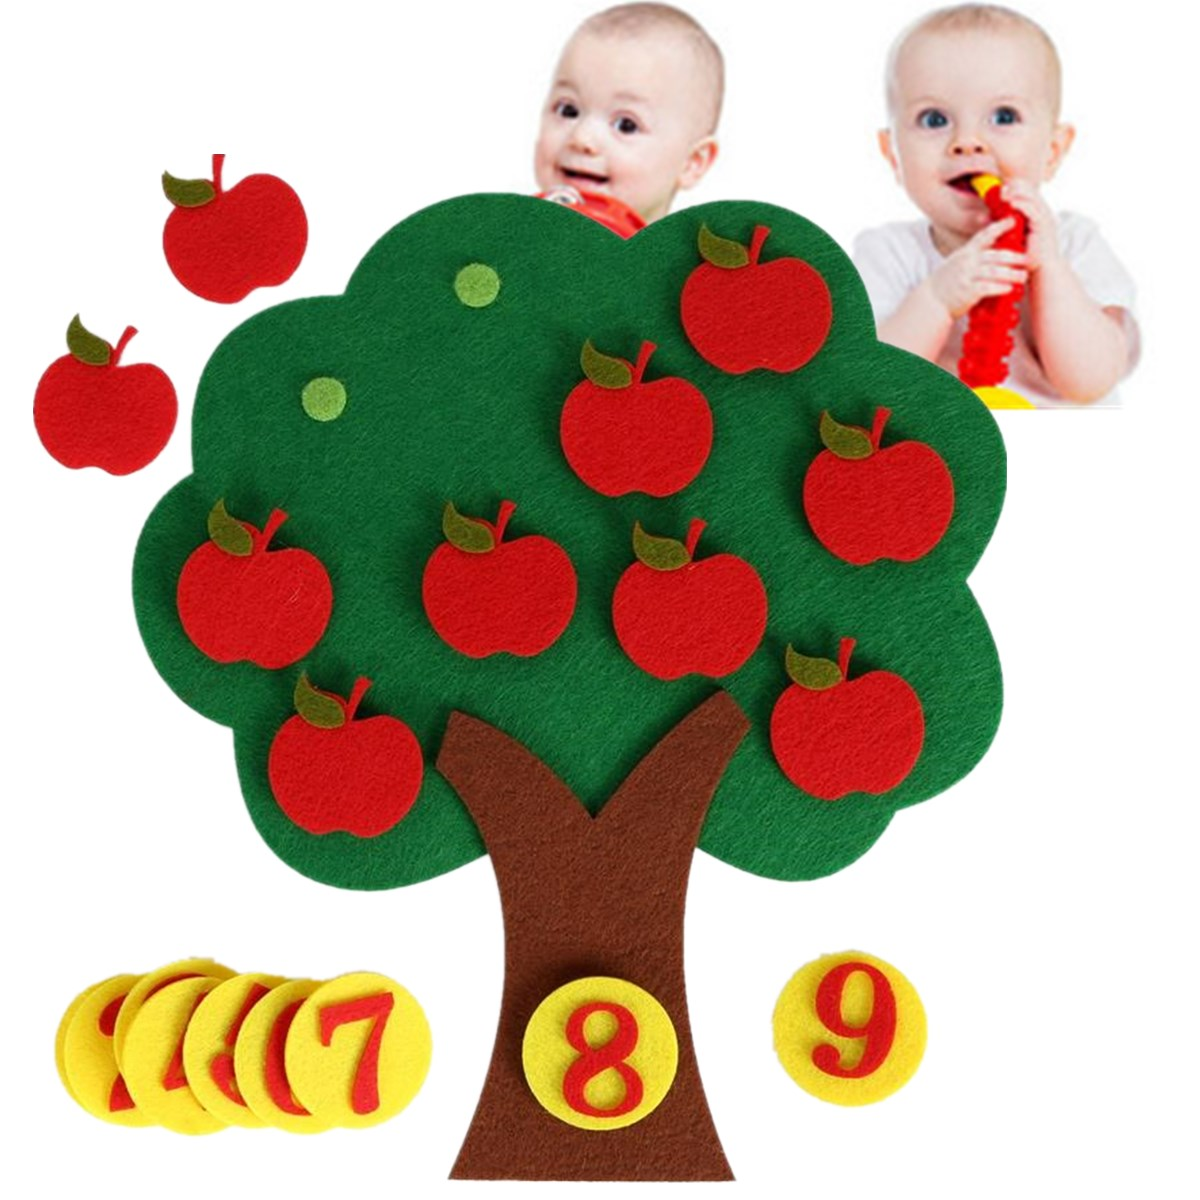 Montessori Teaching Aids App le Trees Math Toys Teaching Kindergarten manual Diy Weave cloth Early Learning Education Toys image